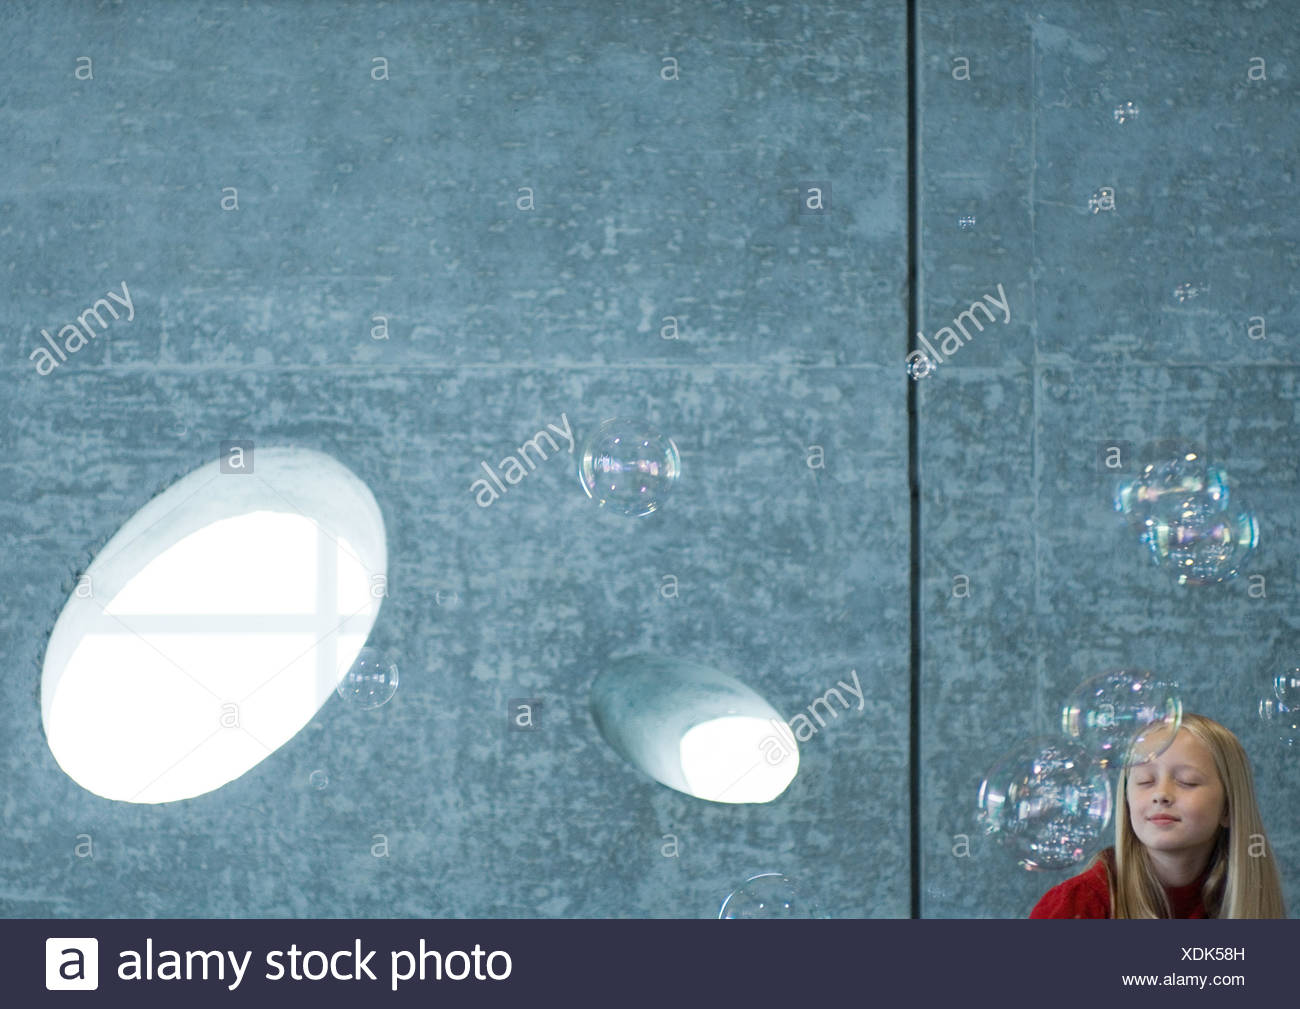 Girl dreaming, surrounded by bubbles Stock Photo